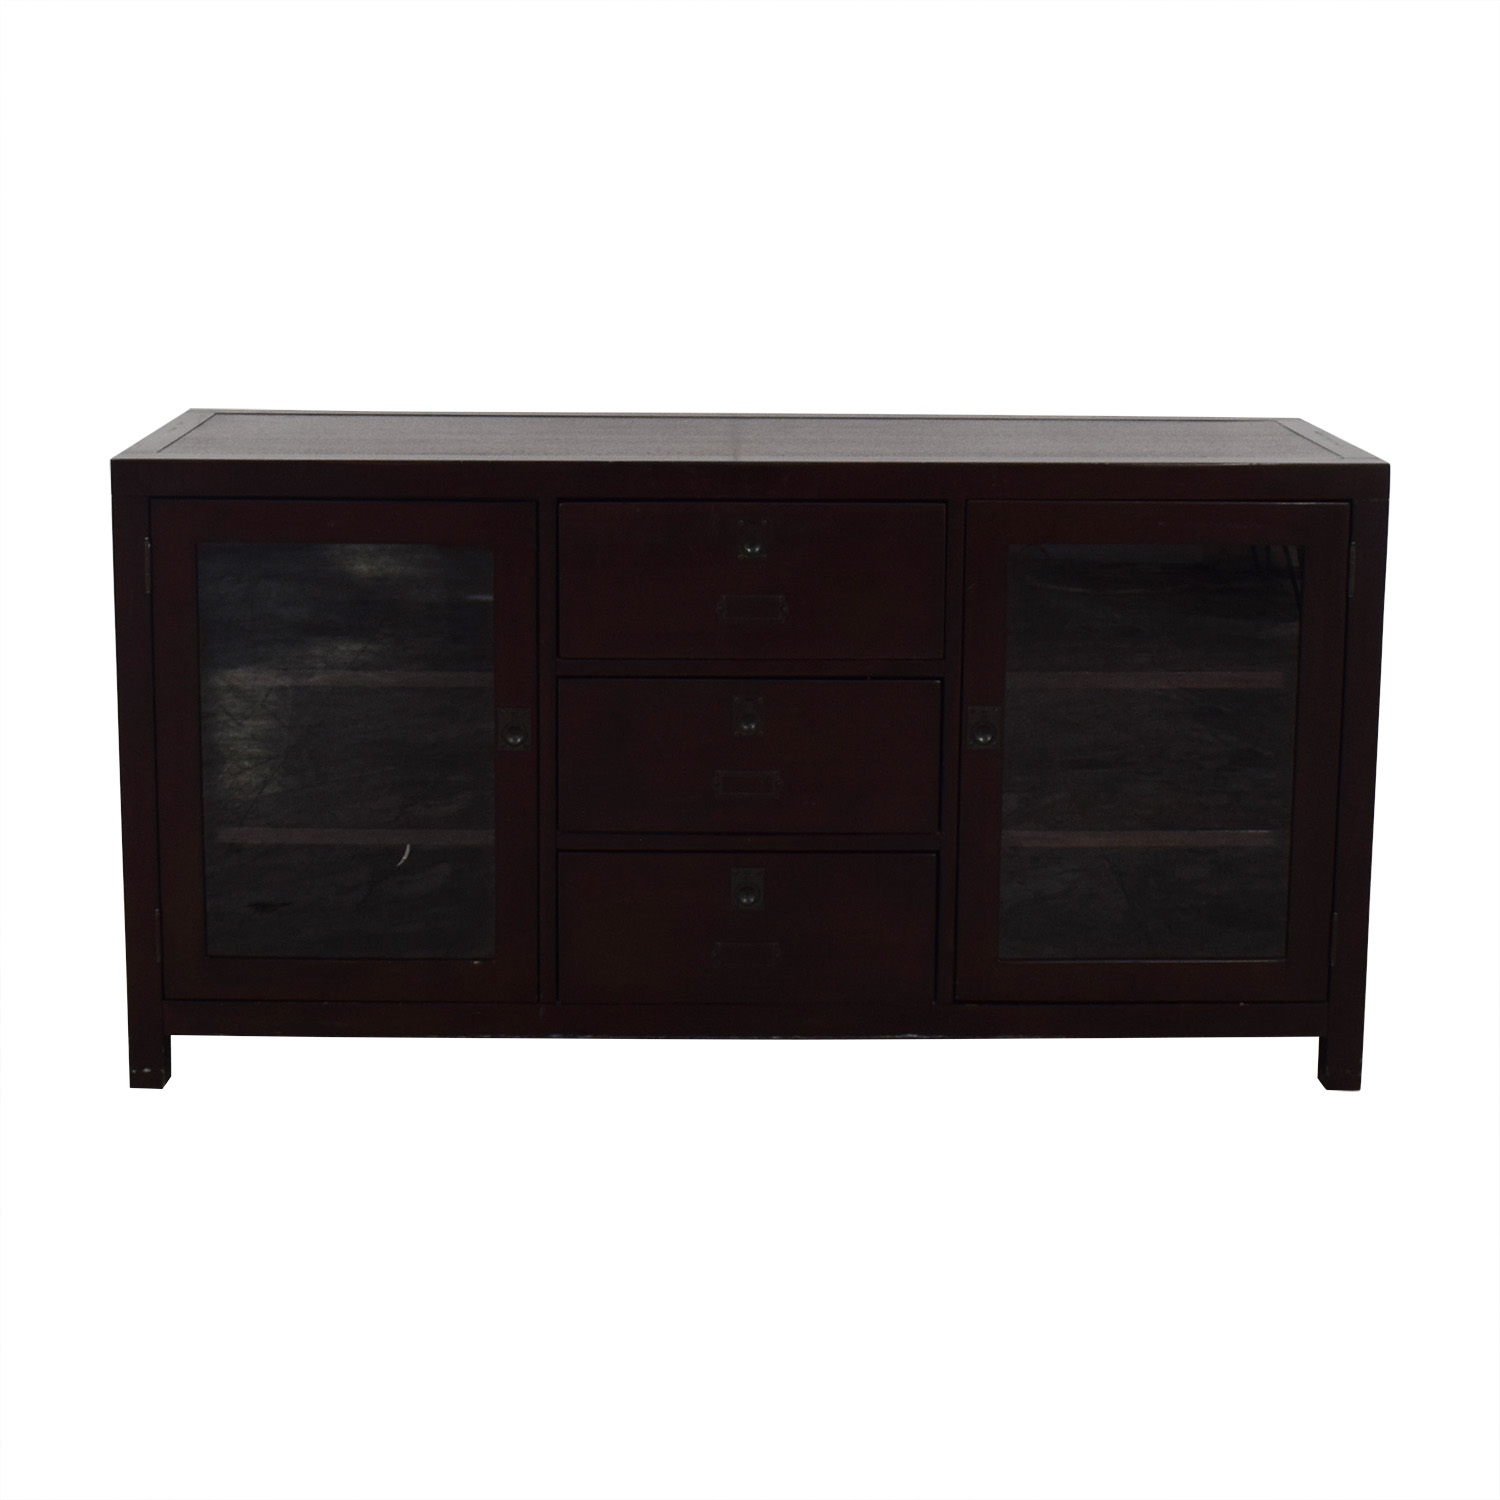 buy Crate & Barrel Crate & Barrel Media Console online